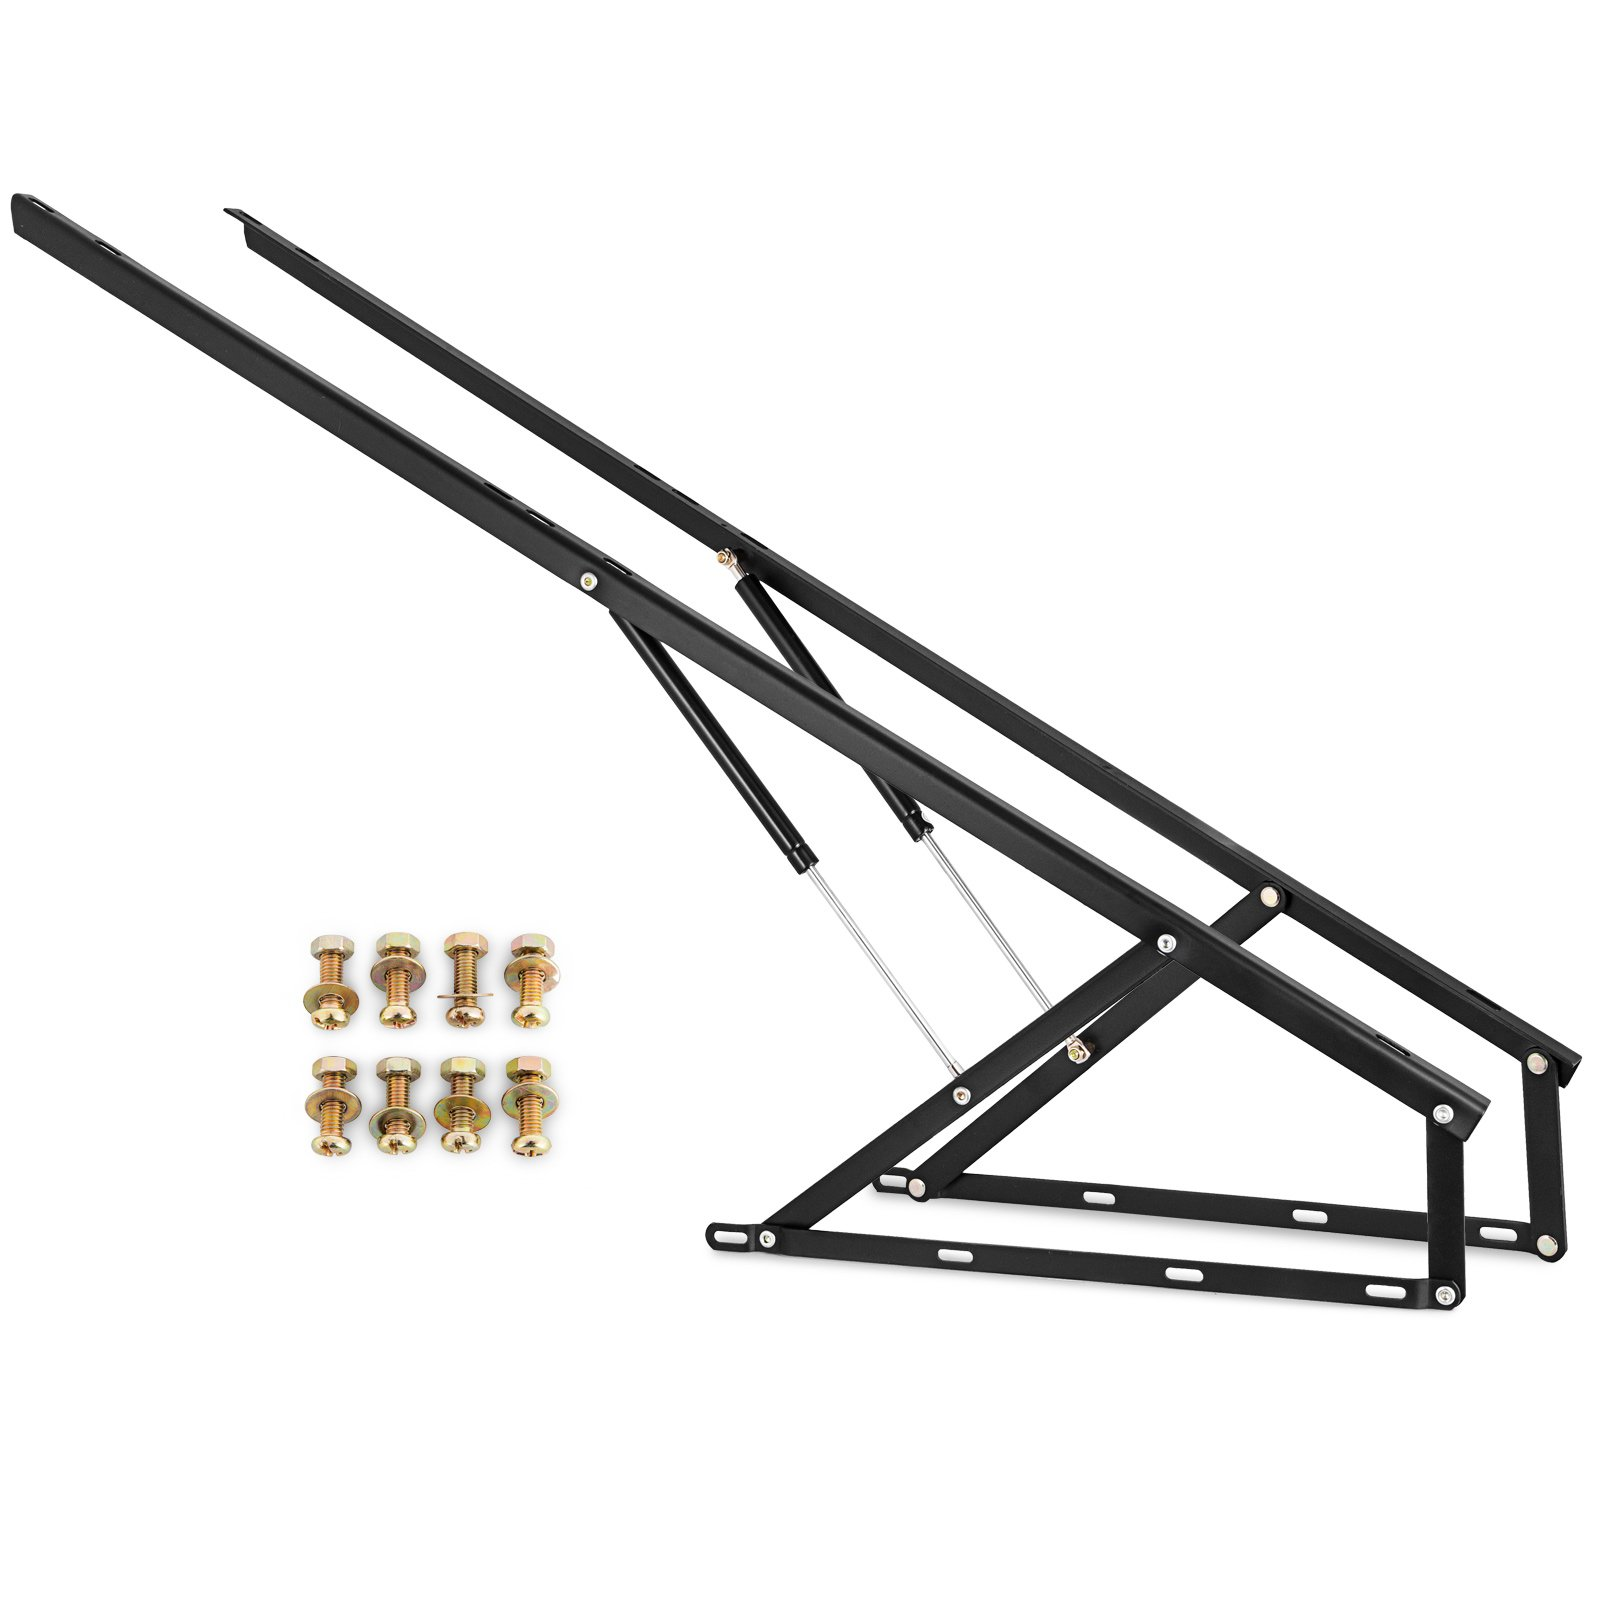 Happybuy Pair of 5FT Pneumatic Storage Bed Lift Mechanism Heavy Duty Gas Spring Bed Storage Lift Kit for Box Bed Sofa Storage Space Saving DIY Project Lifter Lift Up Hardware Black (B150) by Happybuy (Image #1)